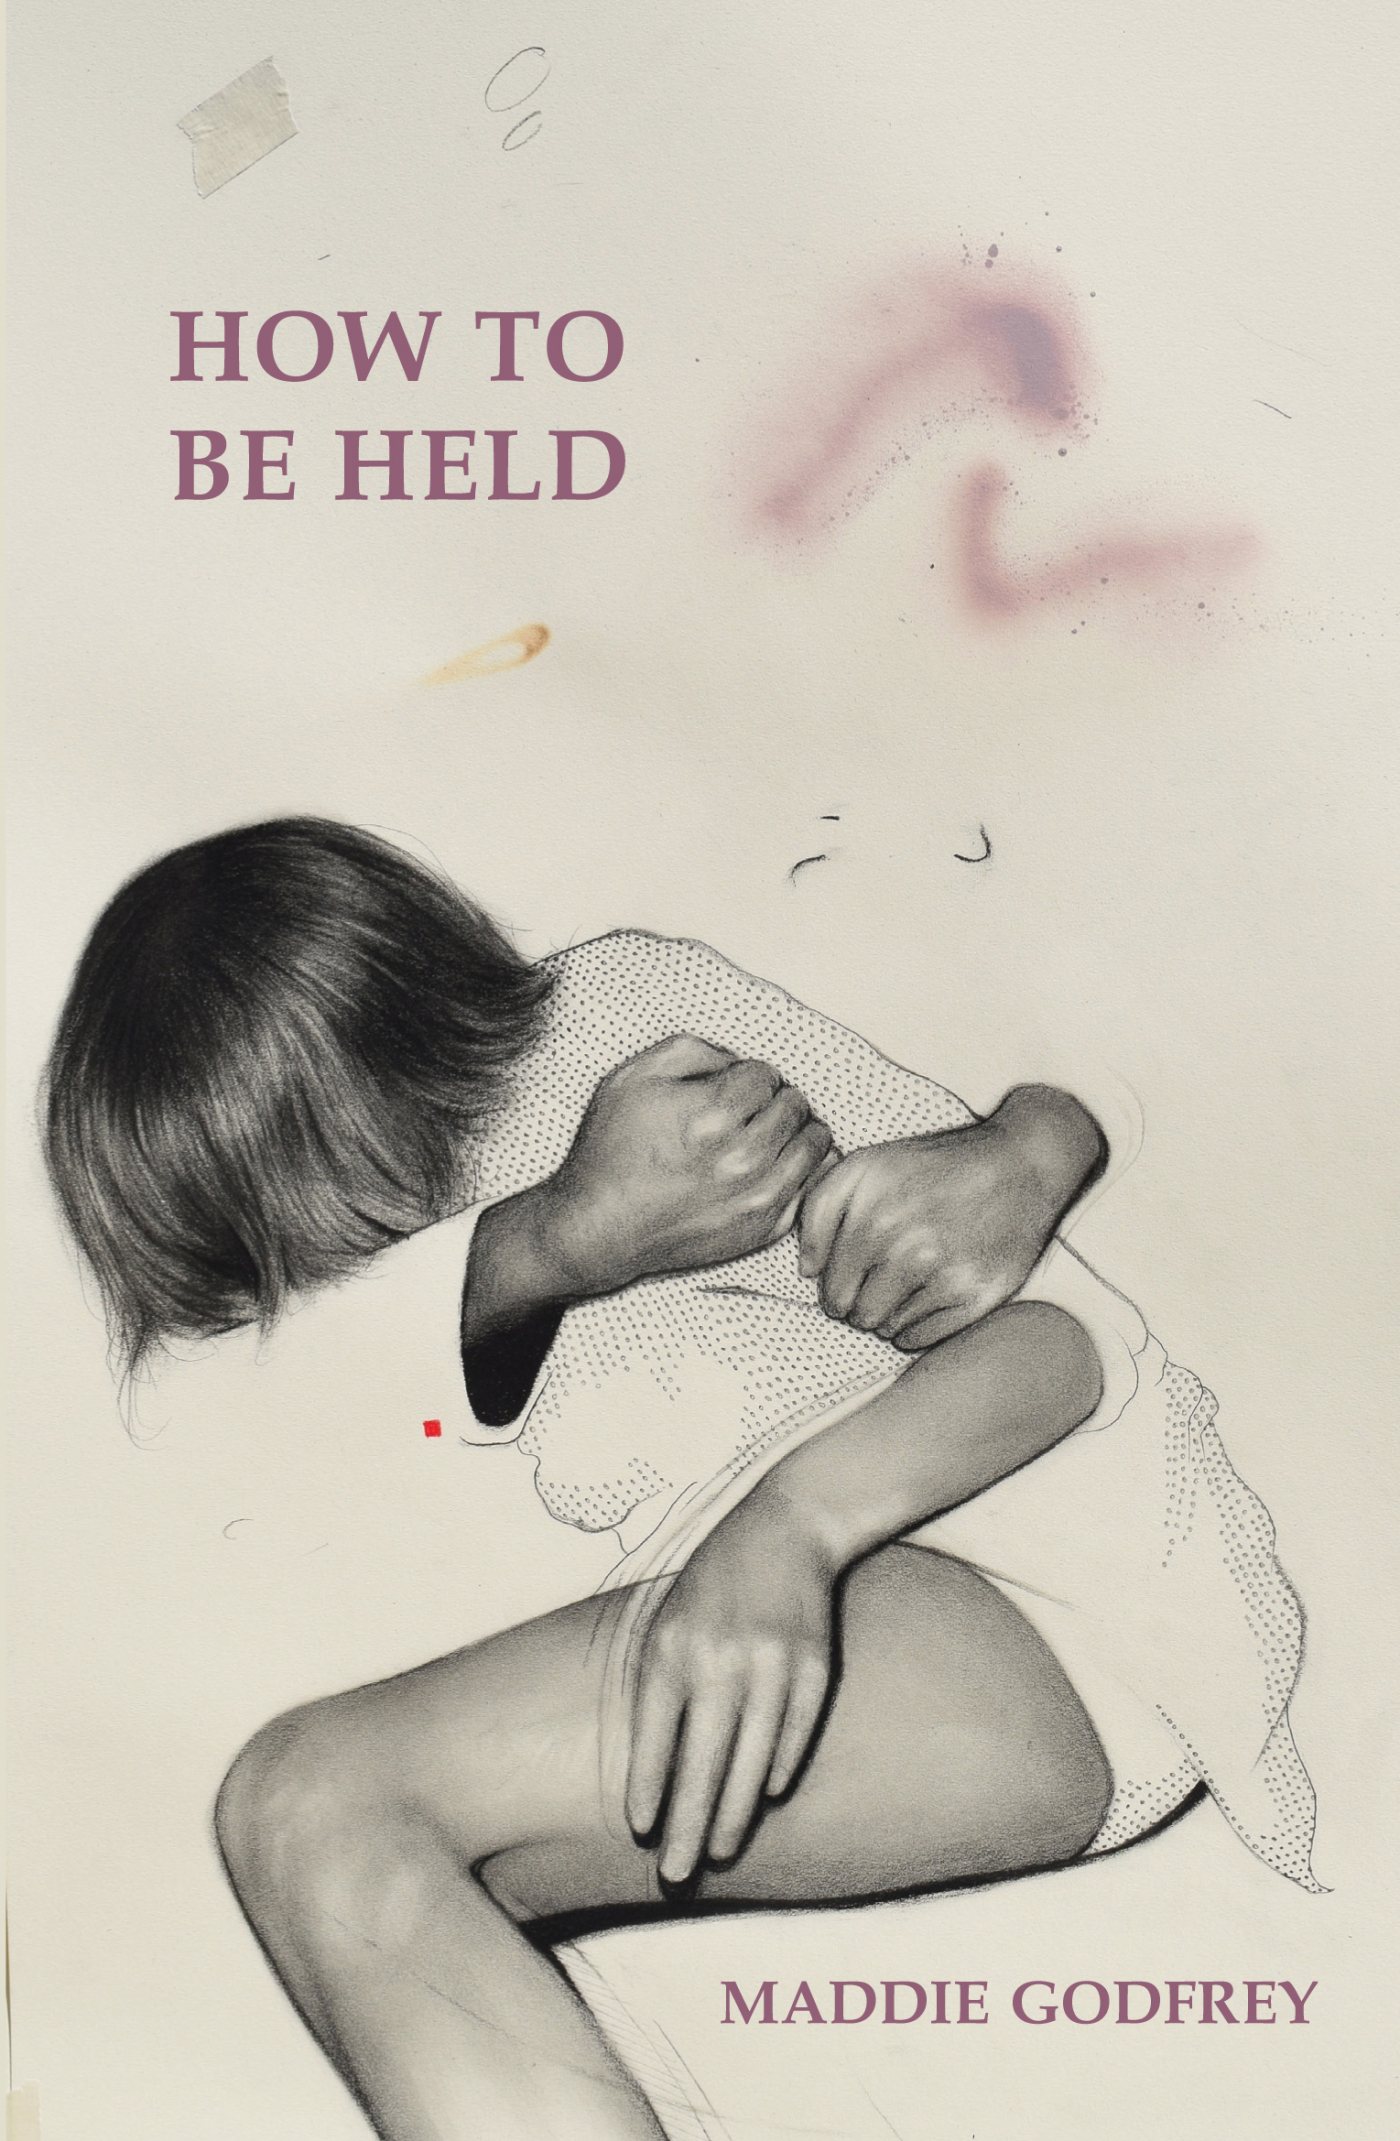 Review: How To Be Held by Maddie Godfrey, by Jemimah Halbert Brewster